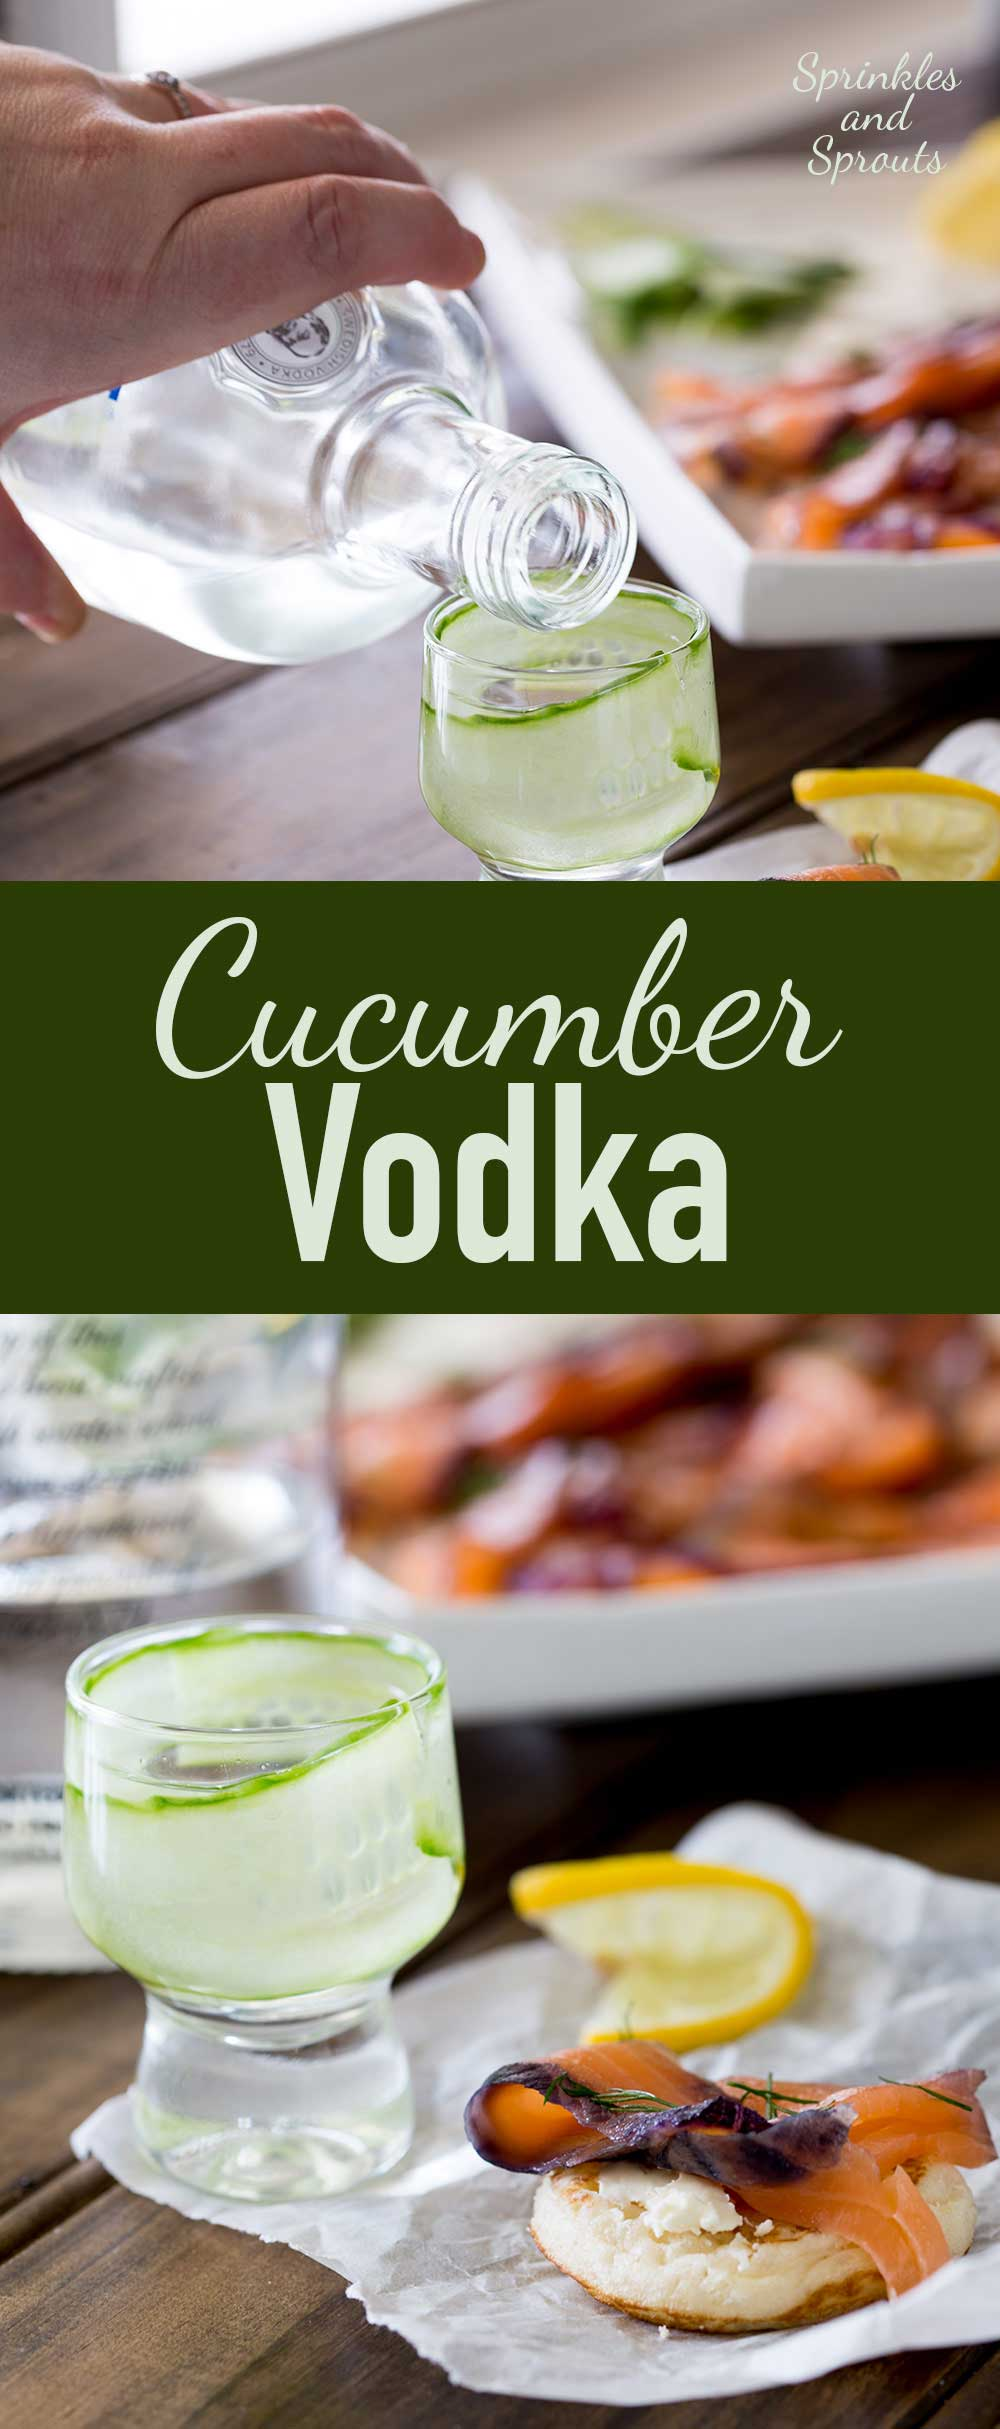 Cucumber Infused Vodka. A refreshing yet light way to enjoy your vodka straight. Or mix it up into some delicious cocktails.